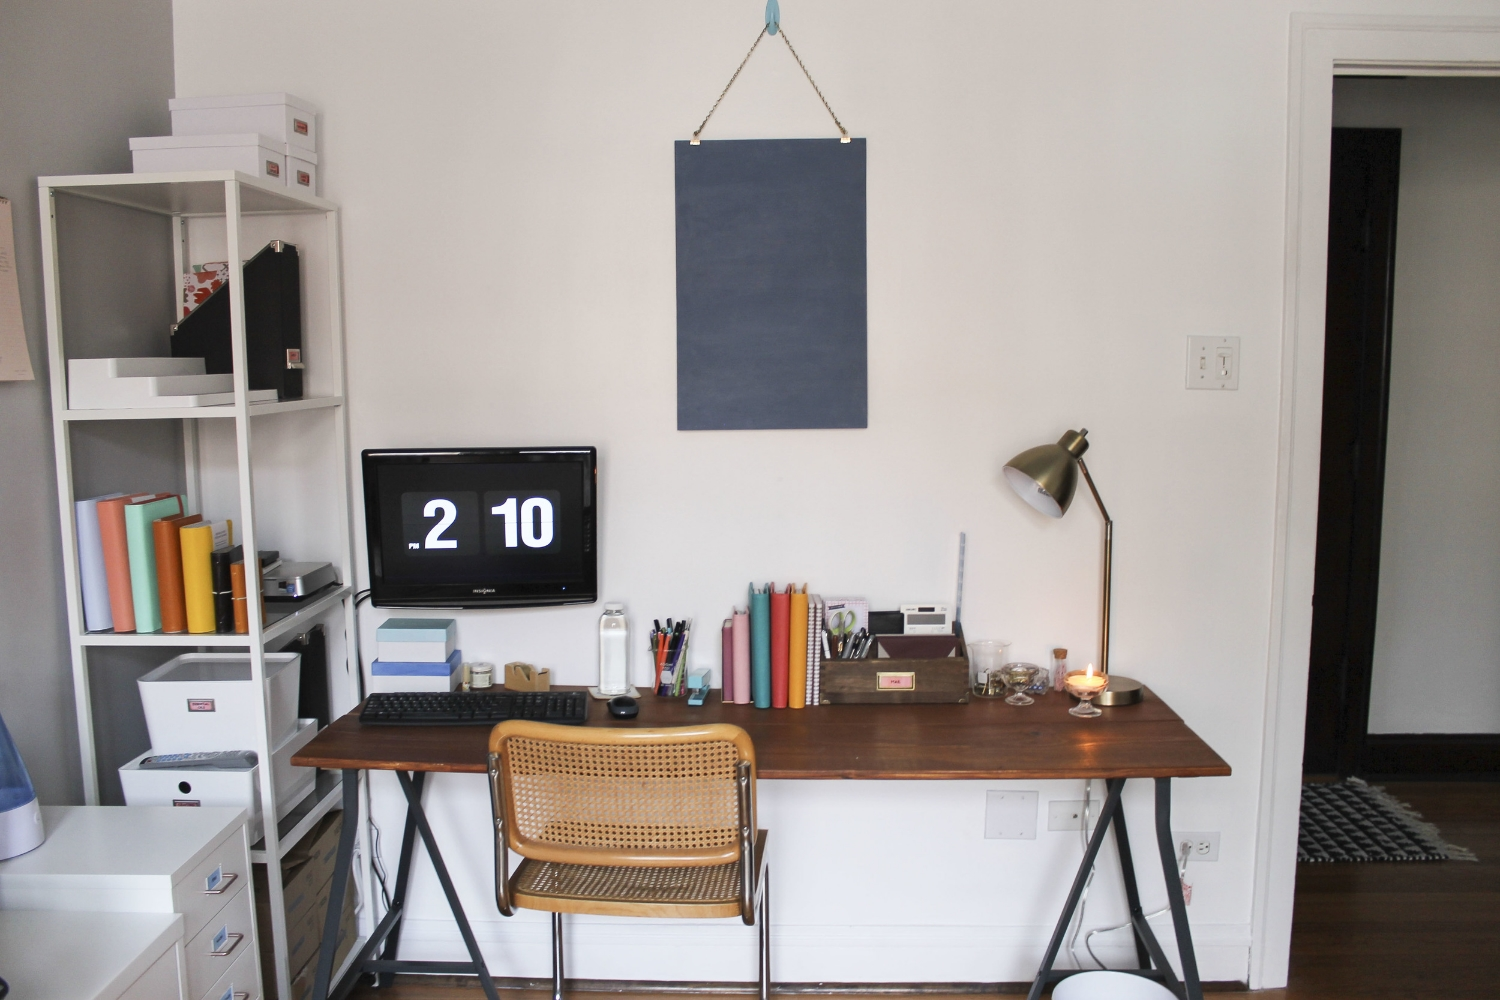 After | Desk - Handmade with reclaimed boards and  Ikea trestles  | Chair - Thrift store 'Cesca' knockoff | Shelving Unit -  Ikea  | Drawer Unit -  Helmer from Ikea